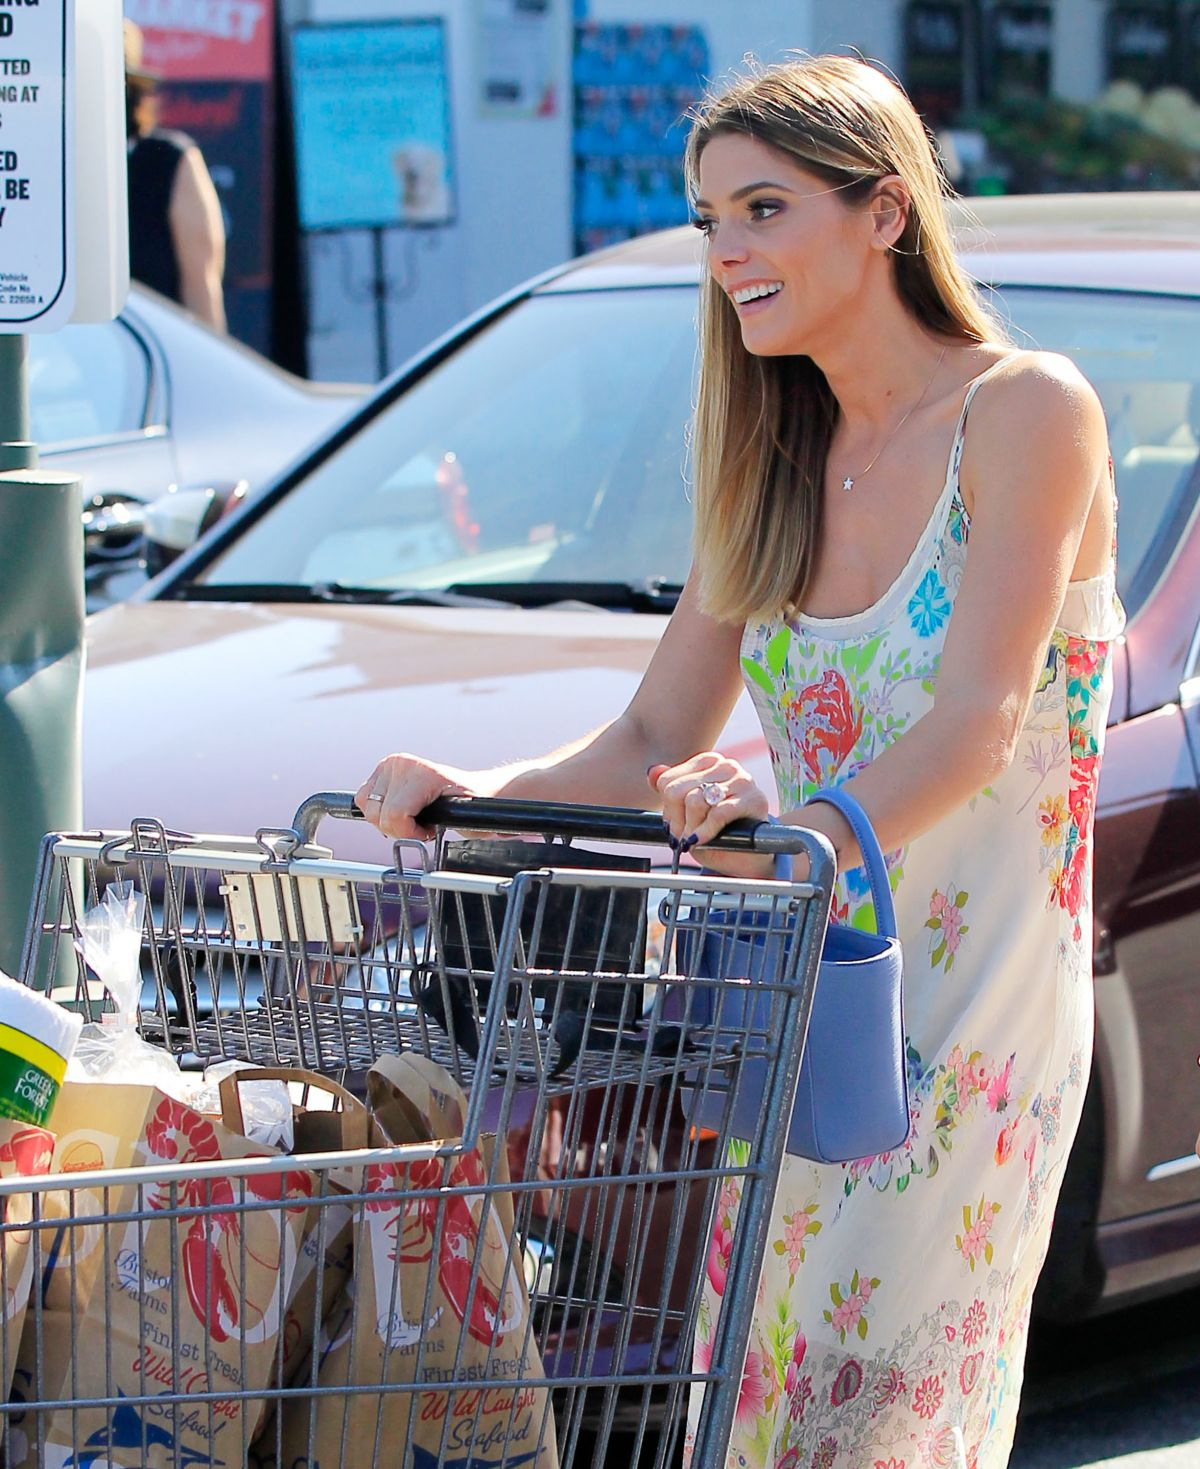 HQ Photos of Ashley Greene Out Shopping In West Hollywood